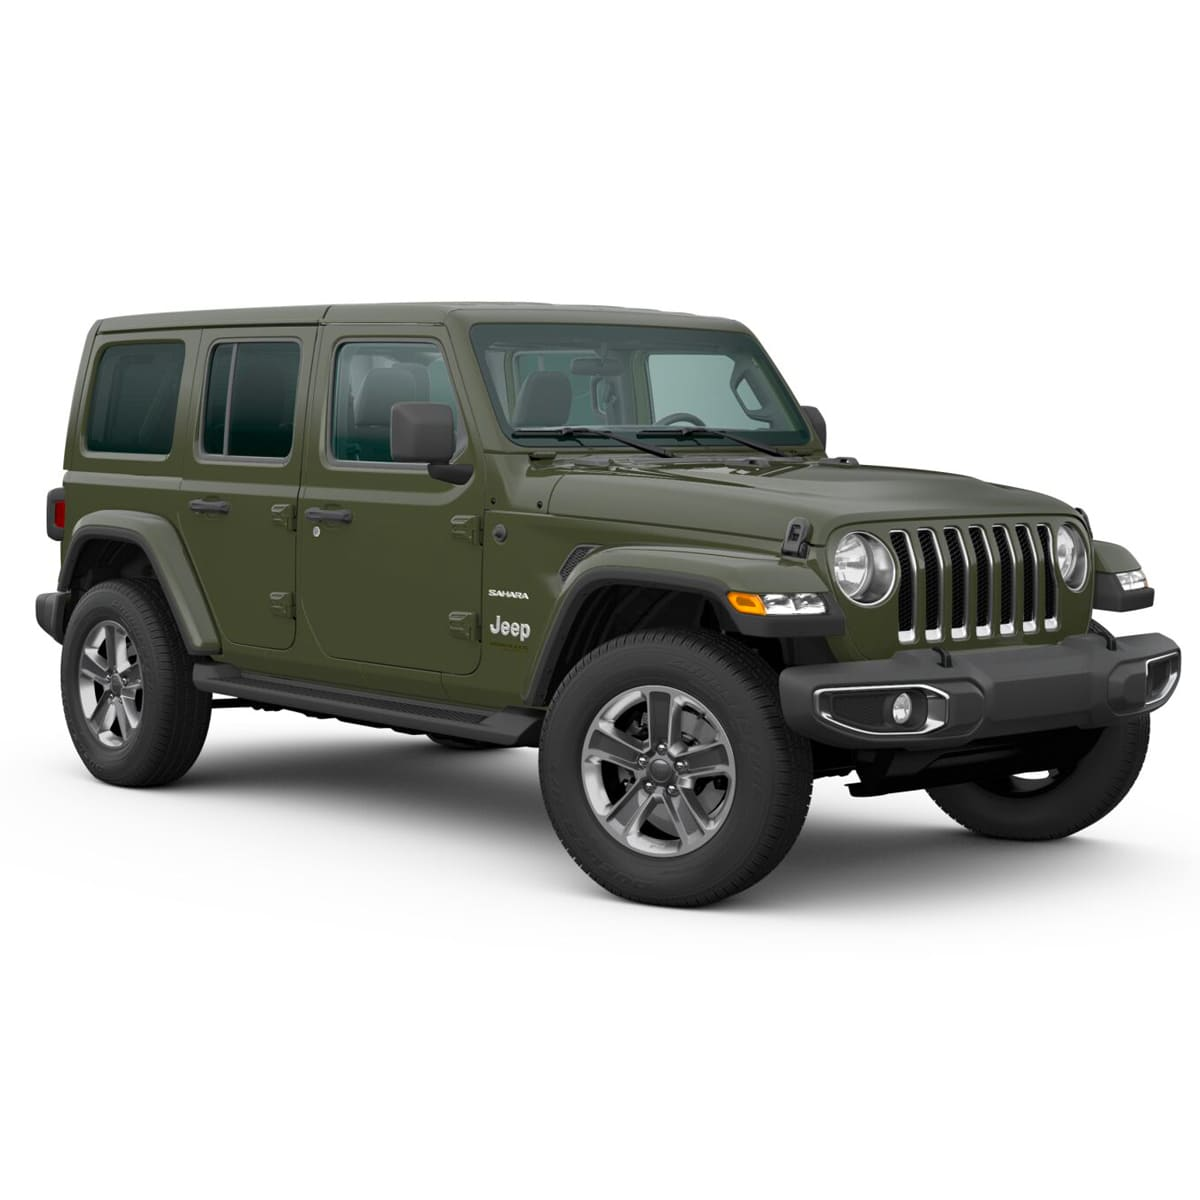 Jeep ALL NEW WRANGLER UNLIMITED SAHARA 4X4 3.6L AT SARGE GREEN